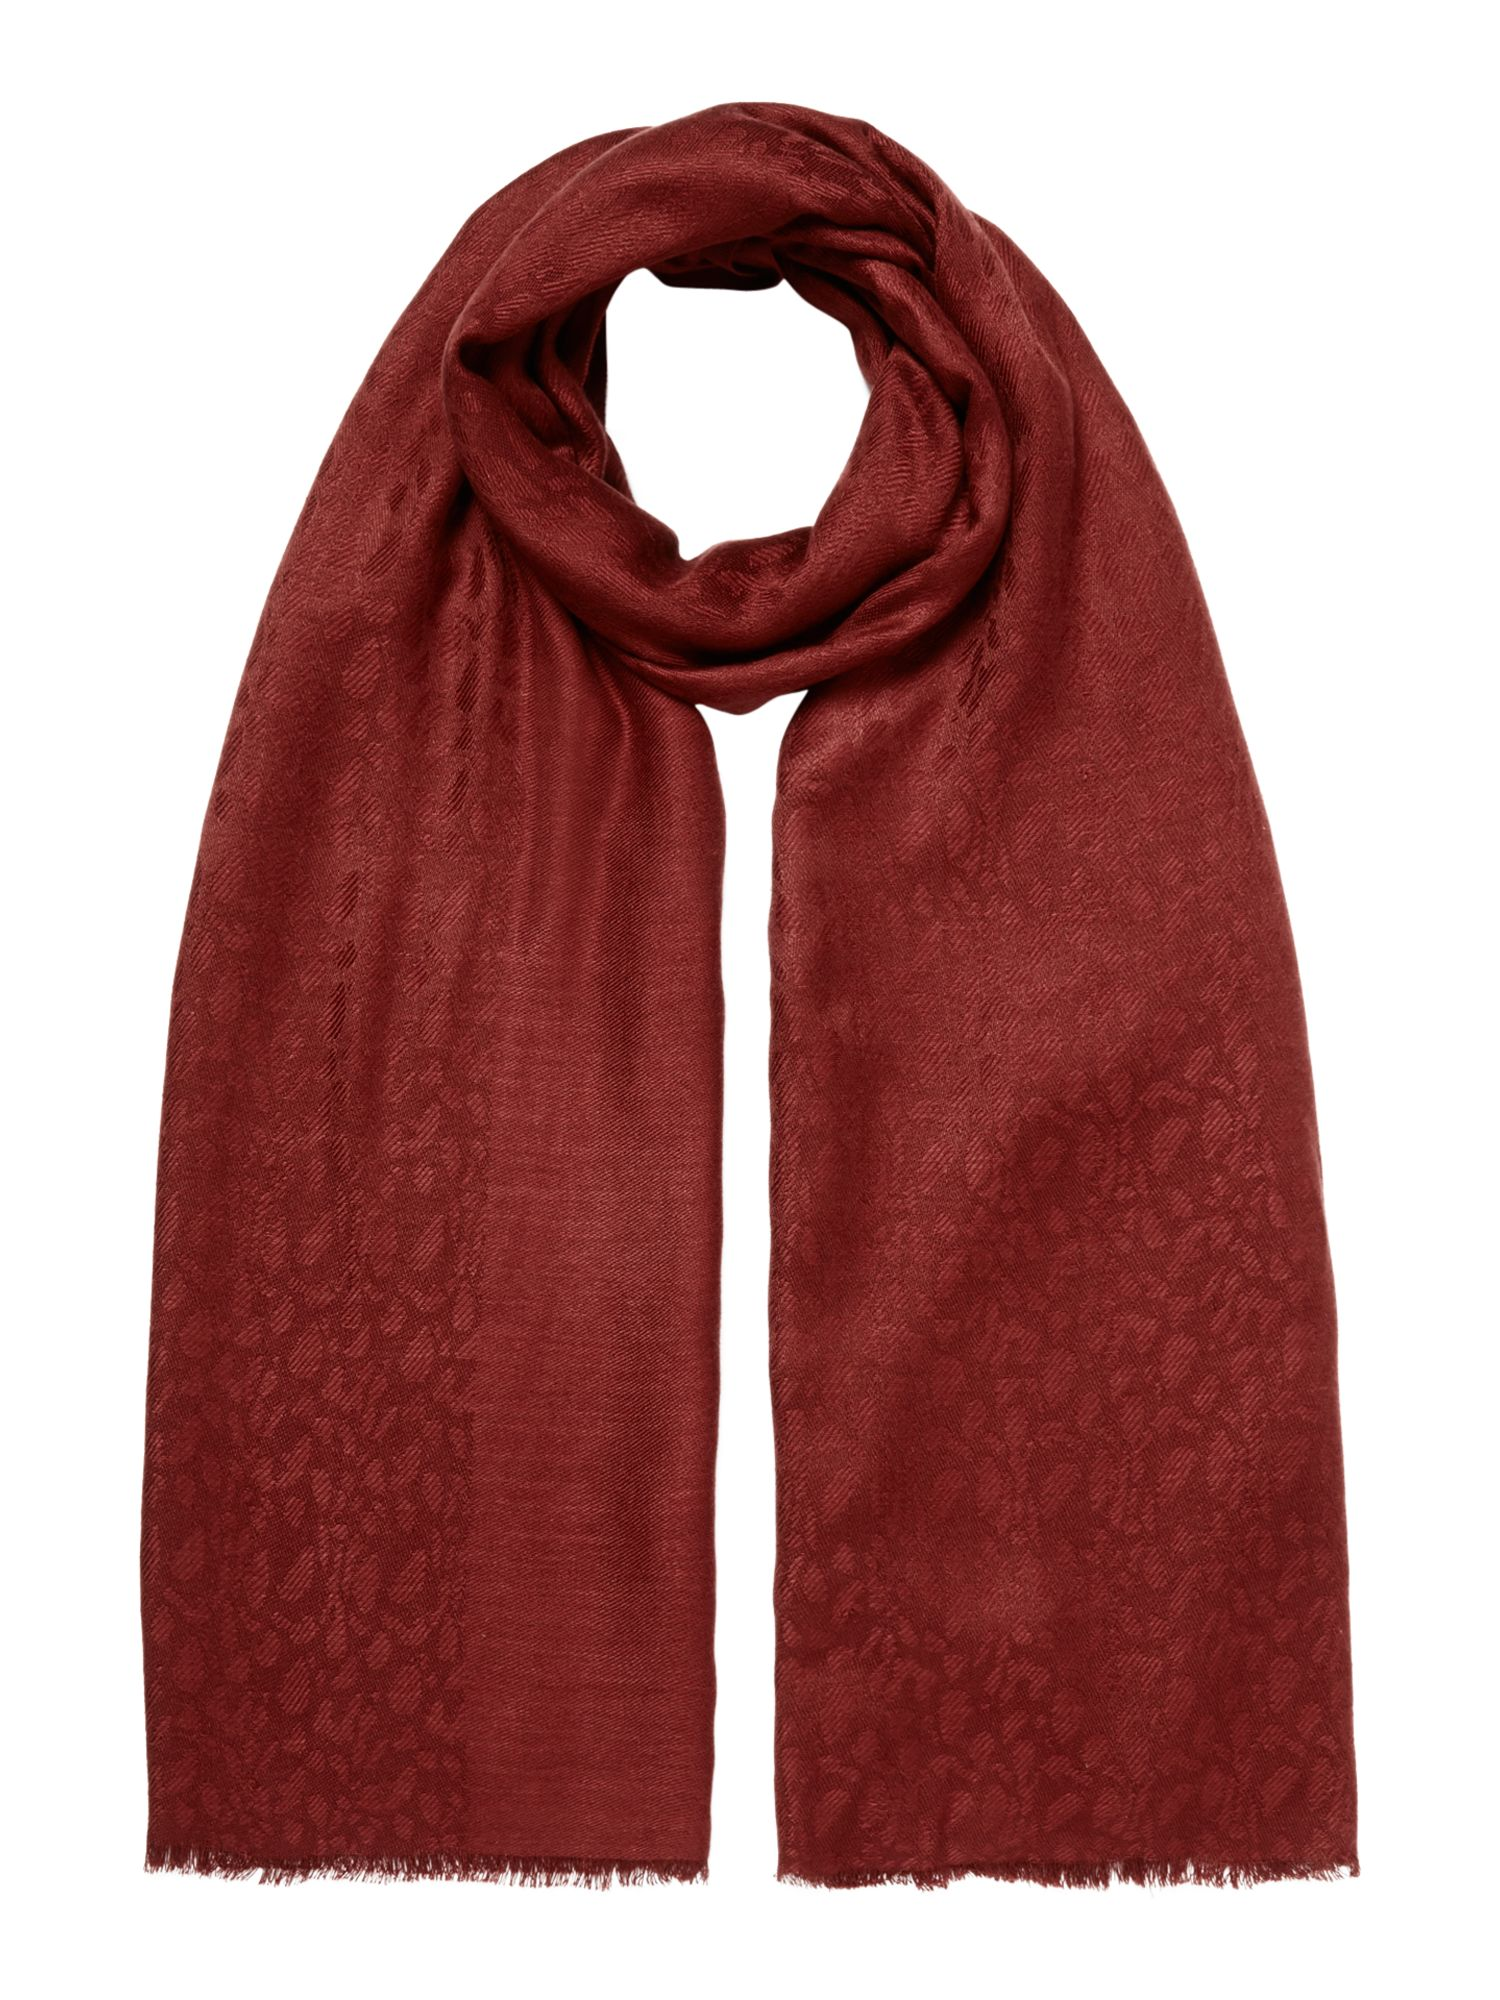 Linea Animal jacquard scarf, Rust